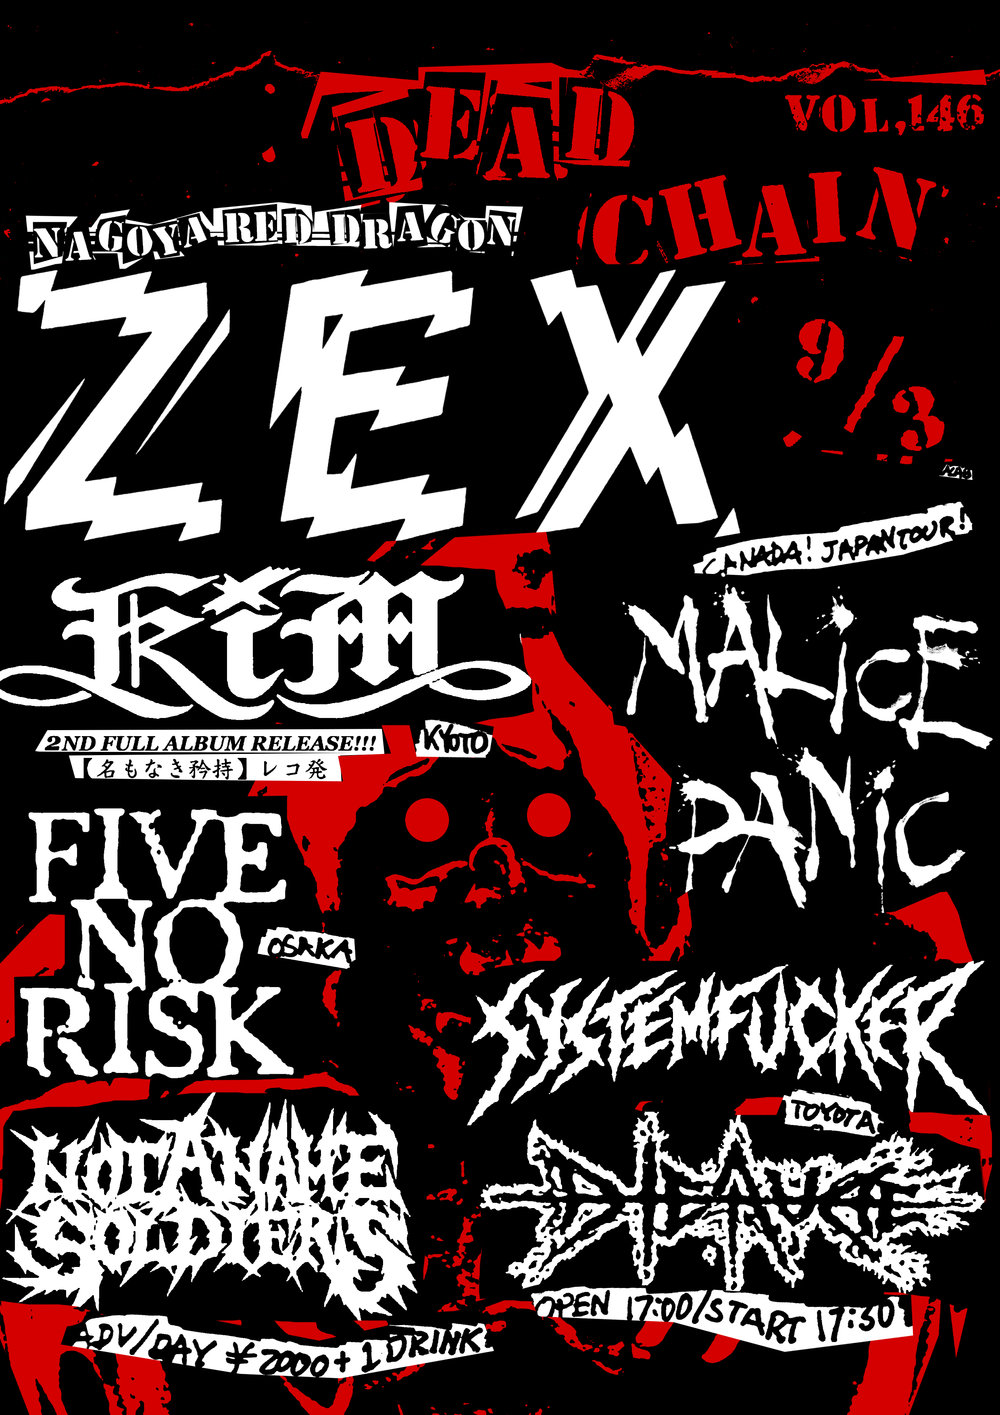 flyer-16.09.03-nagoya-RED.jpg